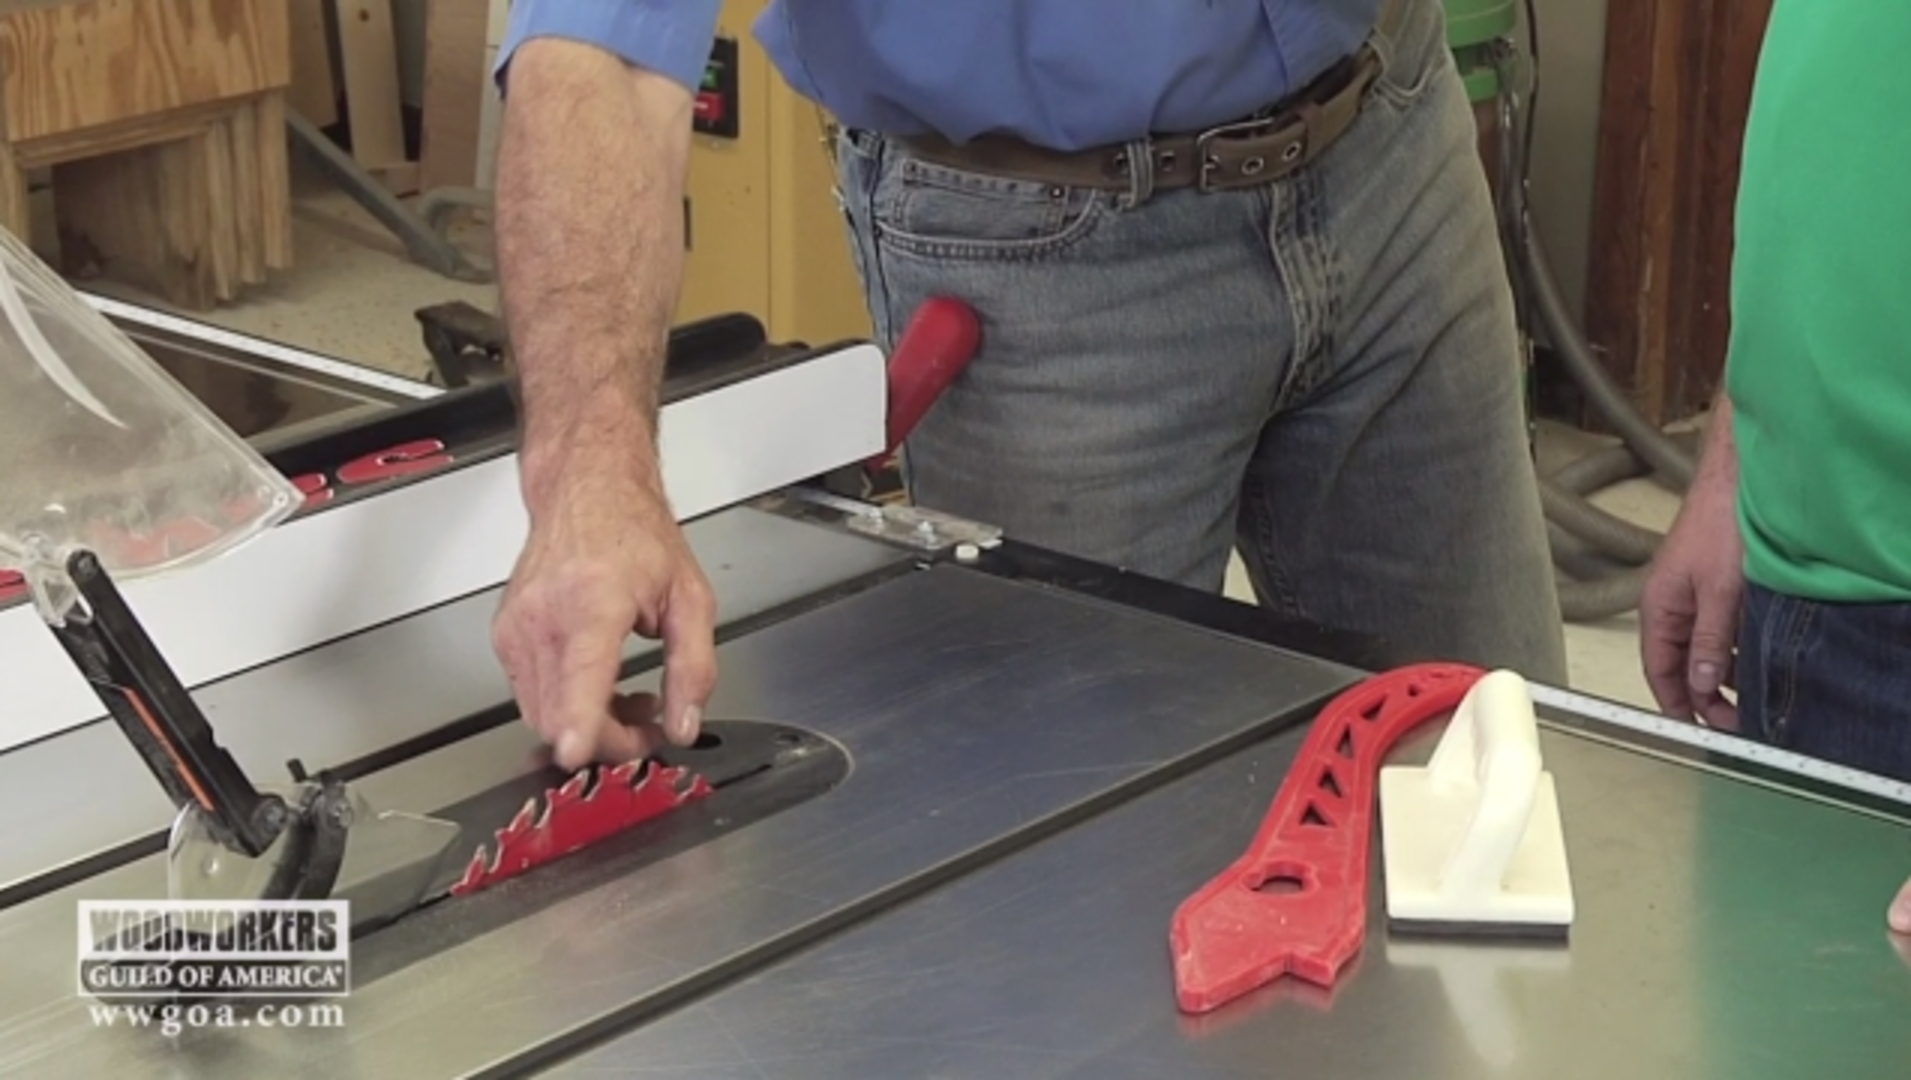 Sharpen Your Skills - Table Saw Safety for Beginner Woodworking